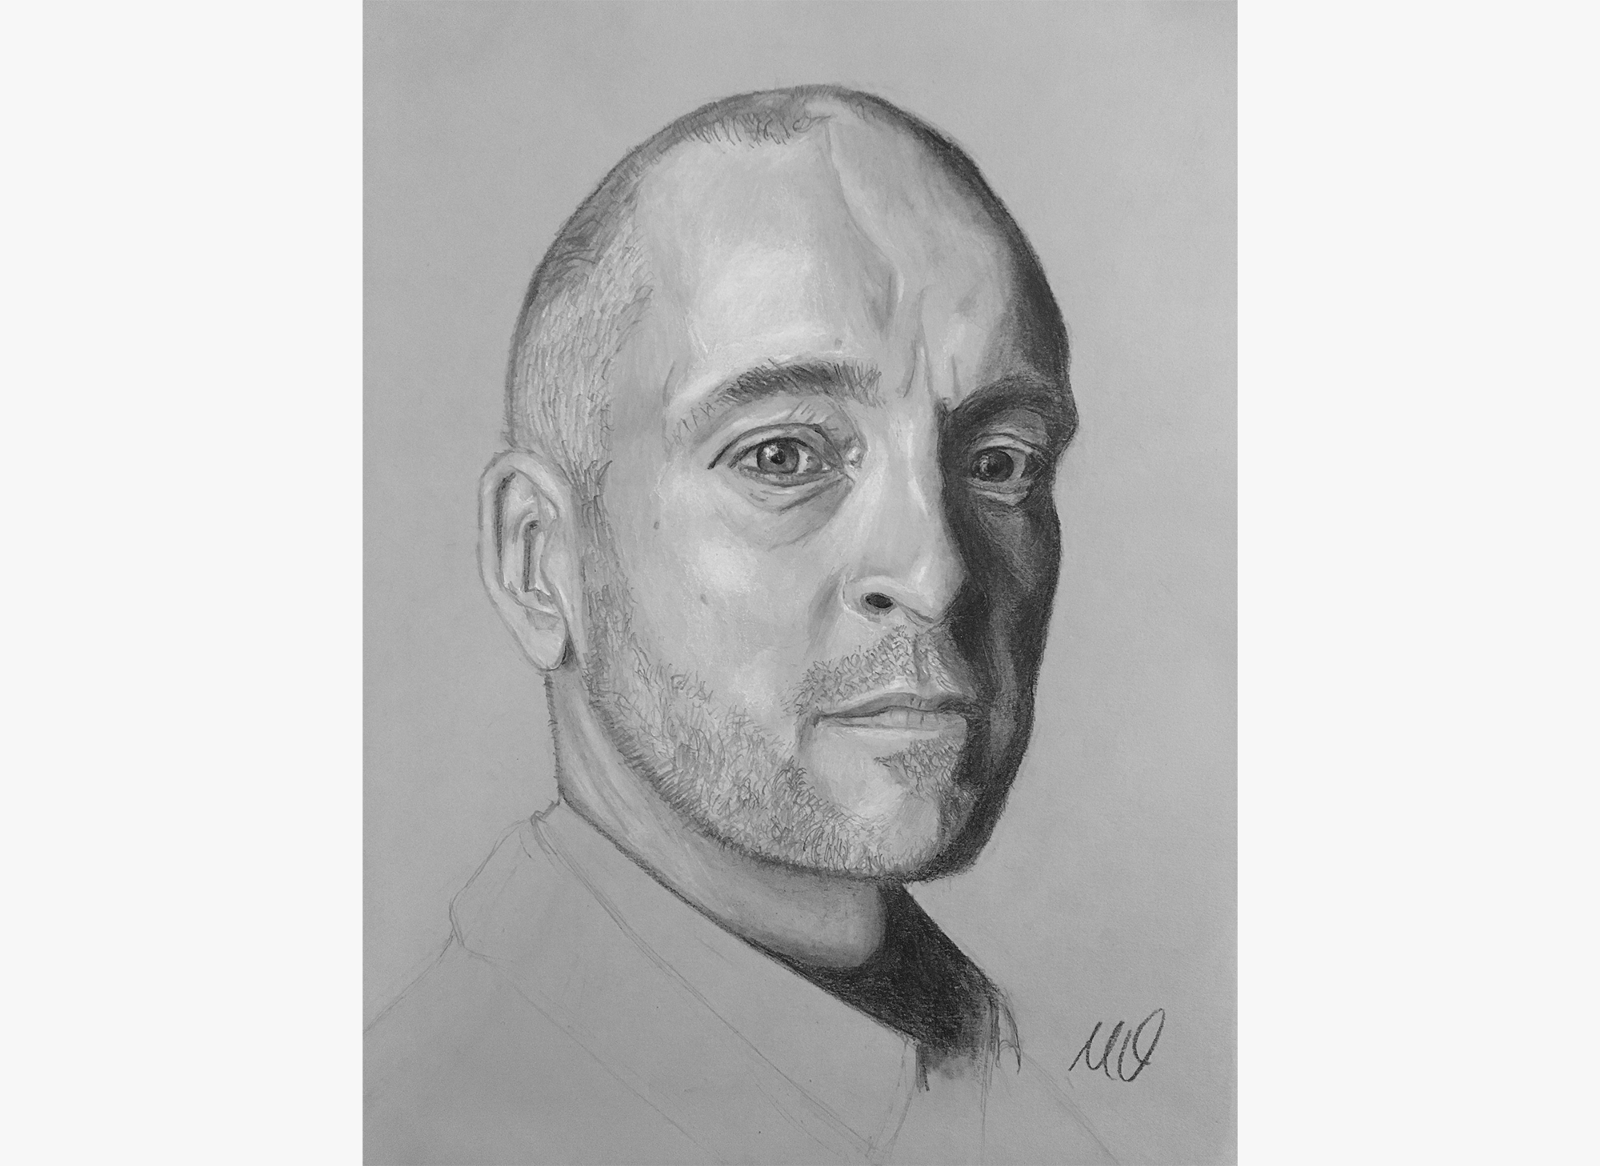 As i mentioned at the beginning of this month british illusionist derren brown originally inspired me to start drawing portraits